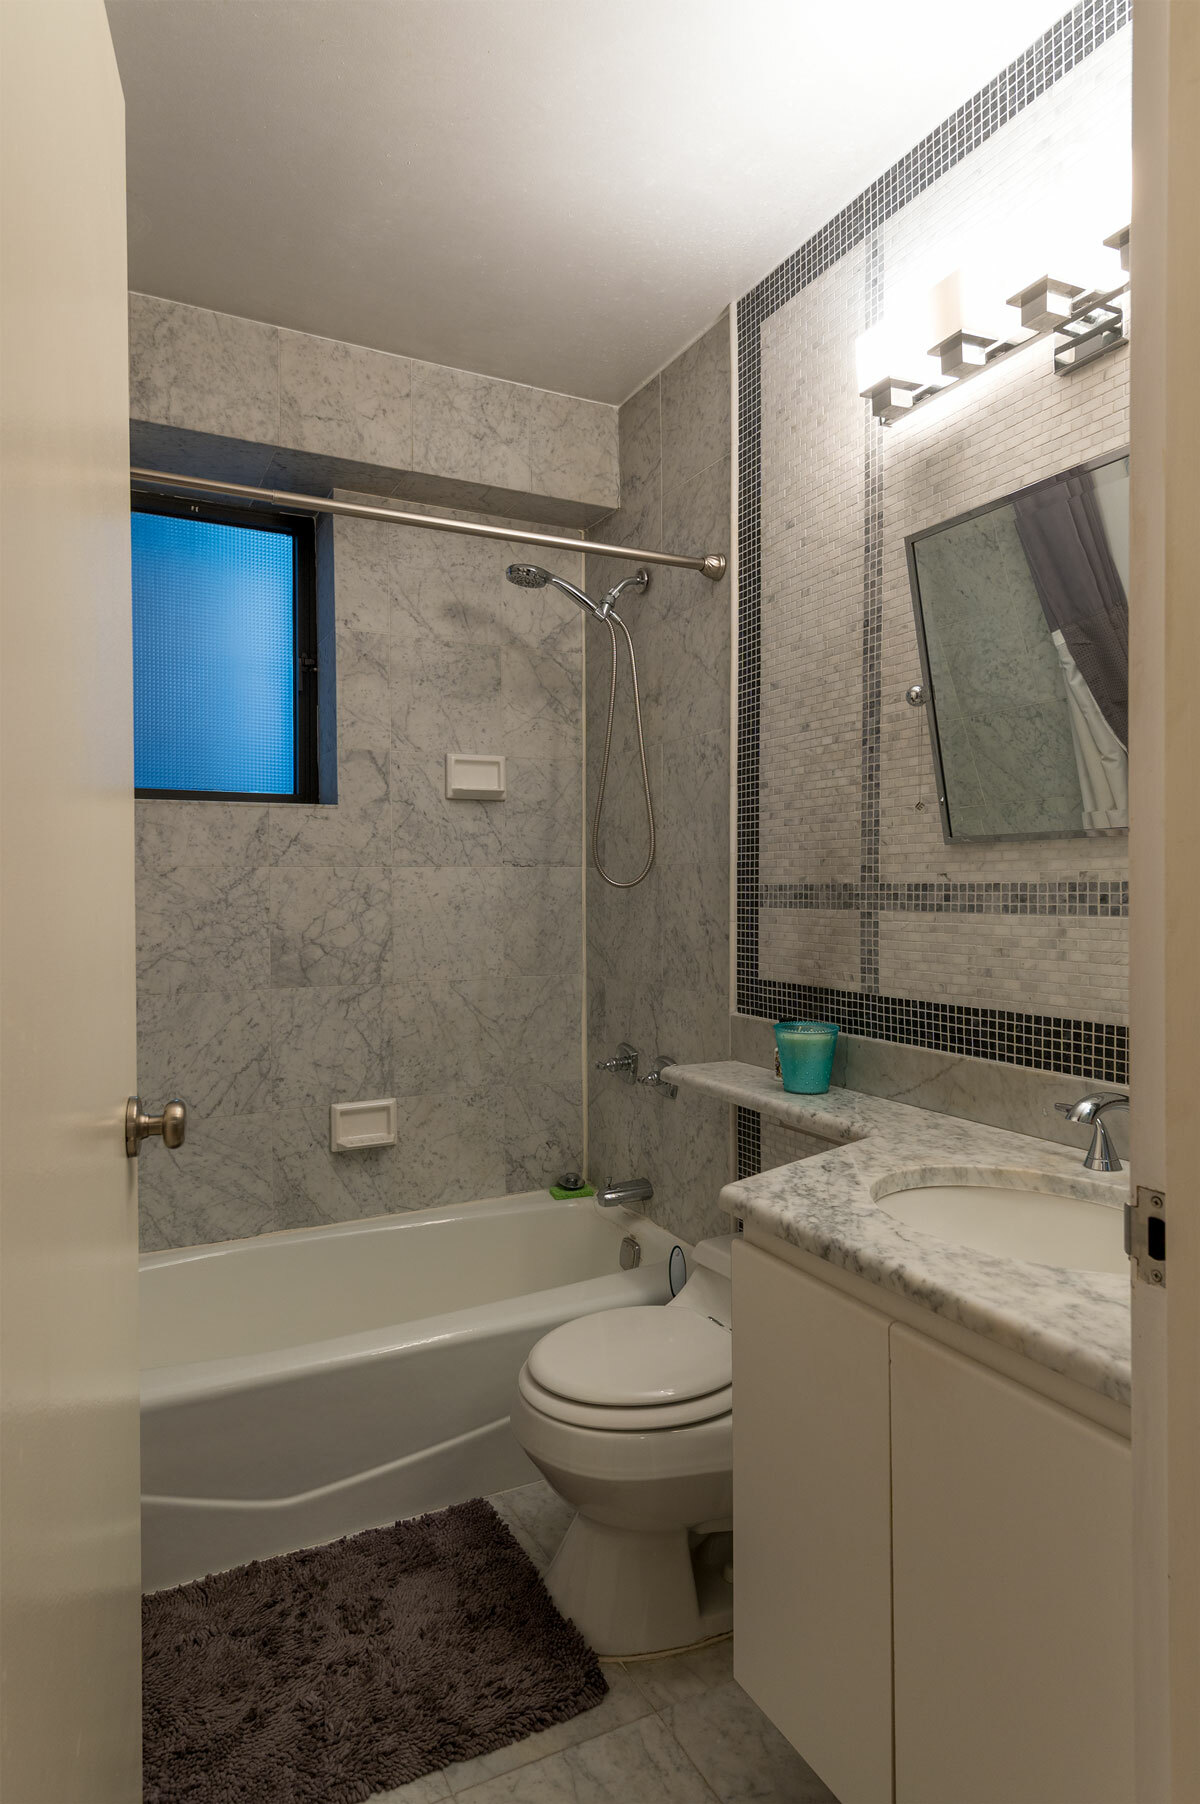 Apartment for sale at 45 East 25th Street, Apt 11A